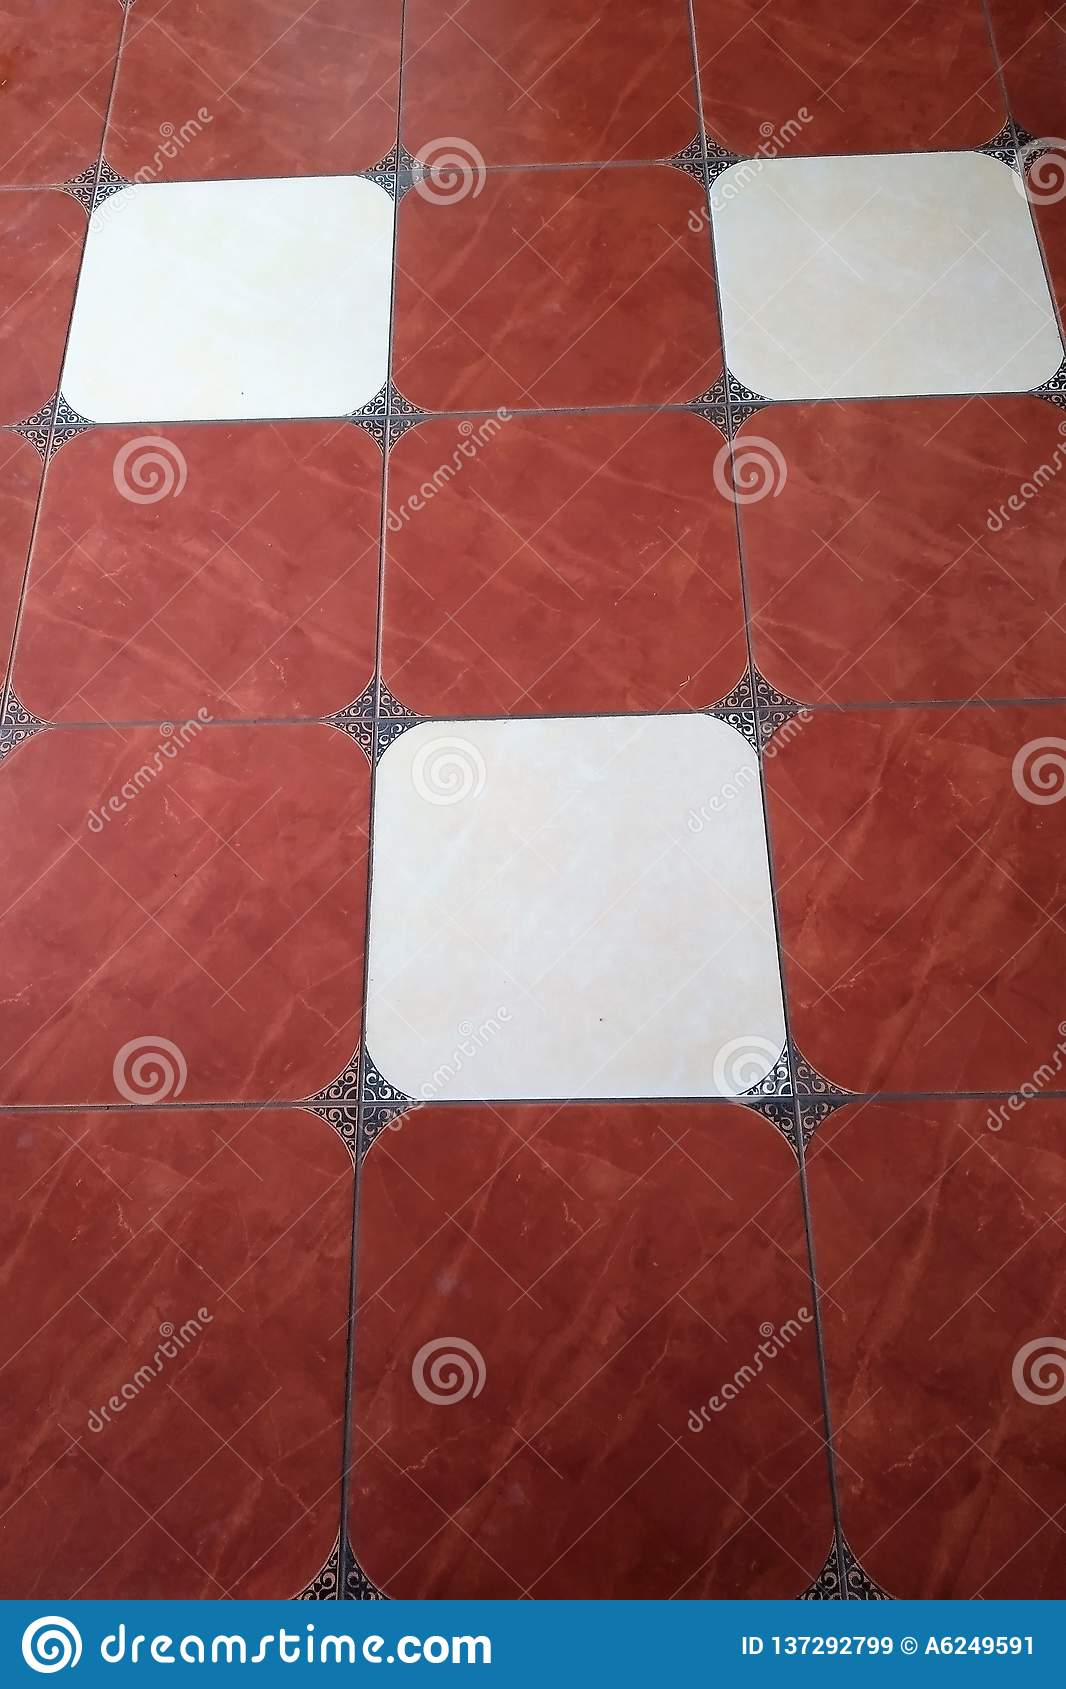 21 677 Ceramic Red Texture Photos Free Royalty Free Stock Photos From Dreamstime